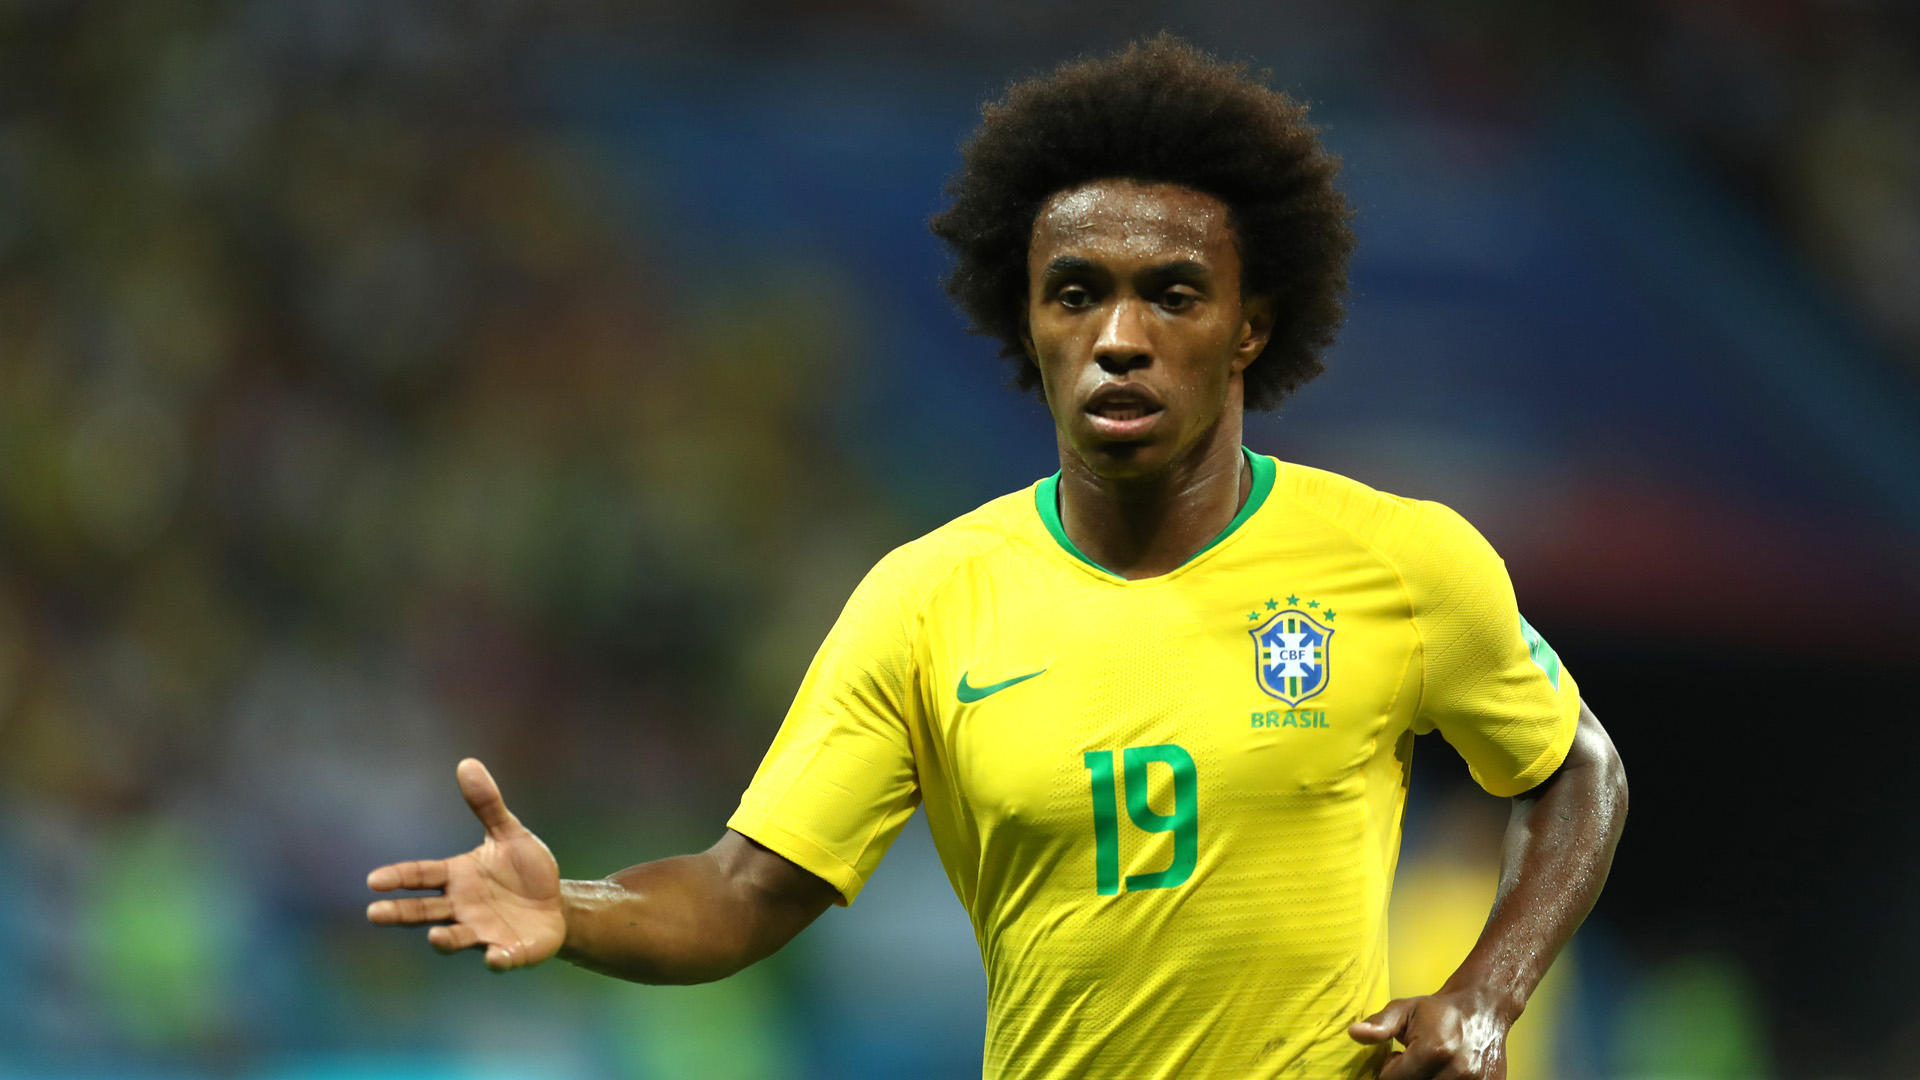 Willian Brasilien WM 2018 06072018